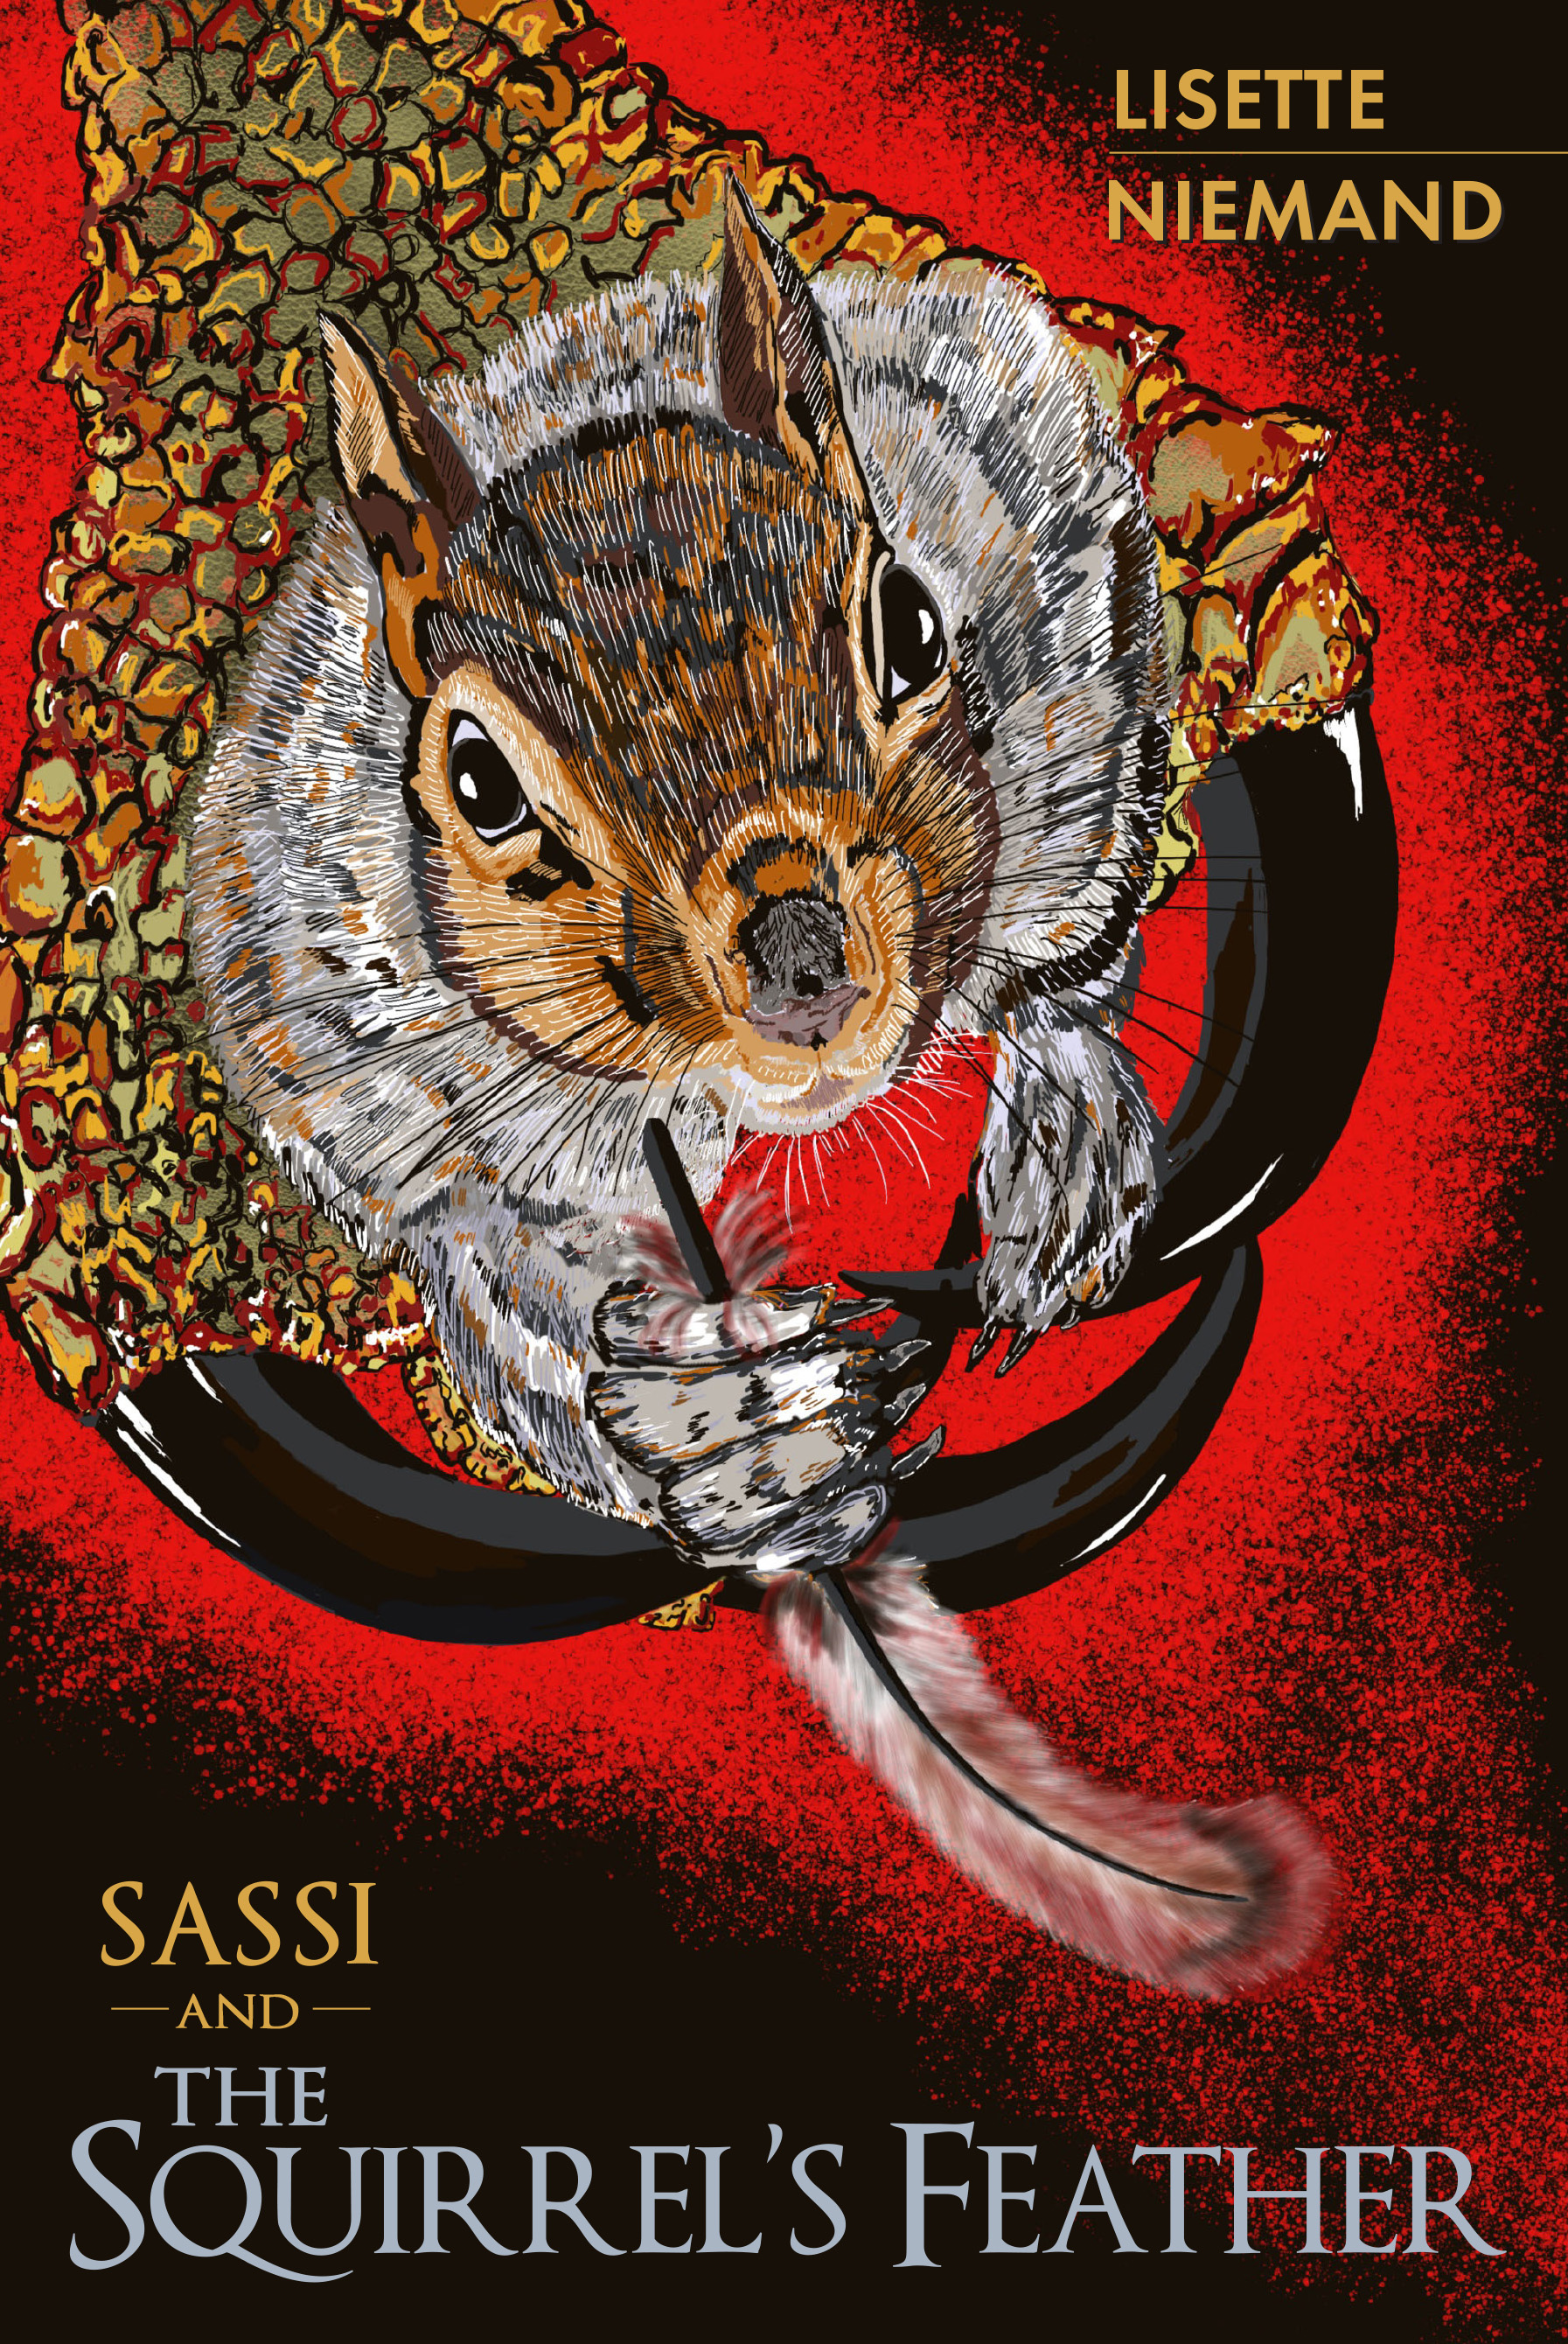 SASSI_SquirrelsFeather_FrontCover.jpg